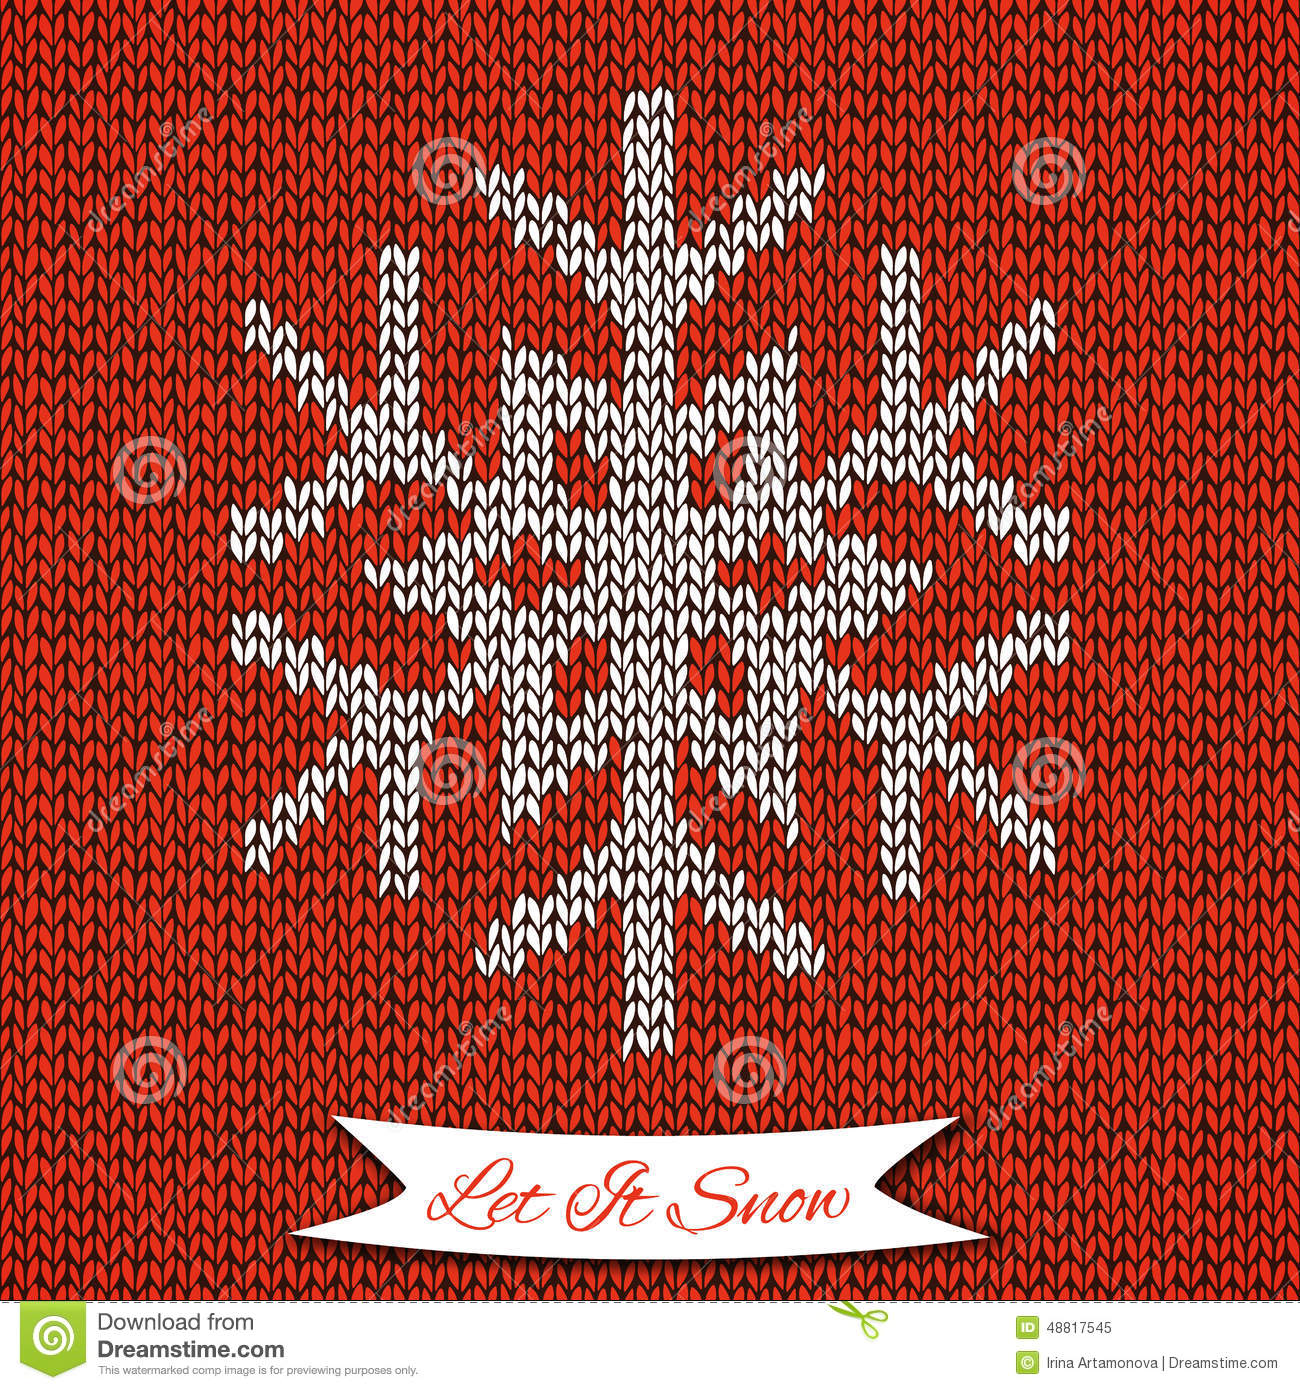 Knitted Snowflake Patterns : Seamless Pattern With Knitted Snowflake Stock Vector - Image: 48817545